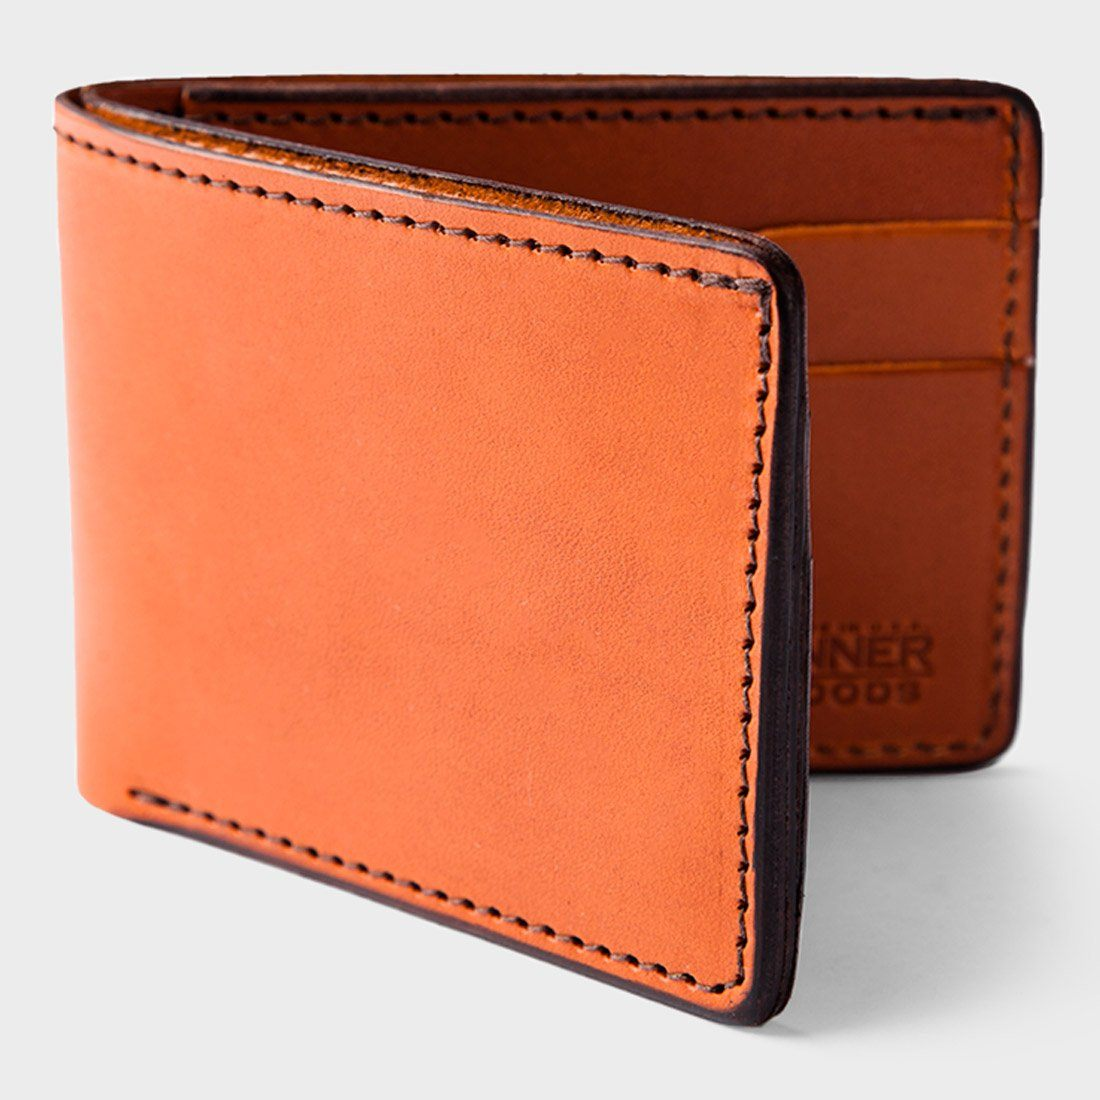 Tanner Goods Utility Bifold Wallet Saddle Tan